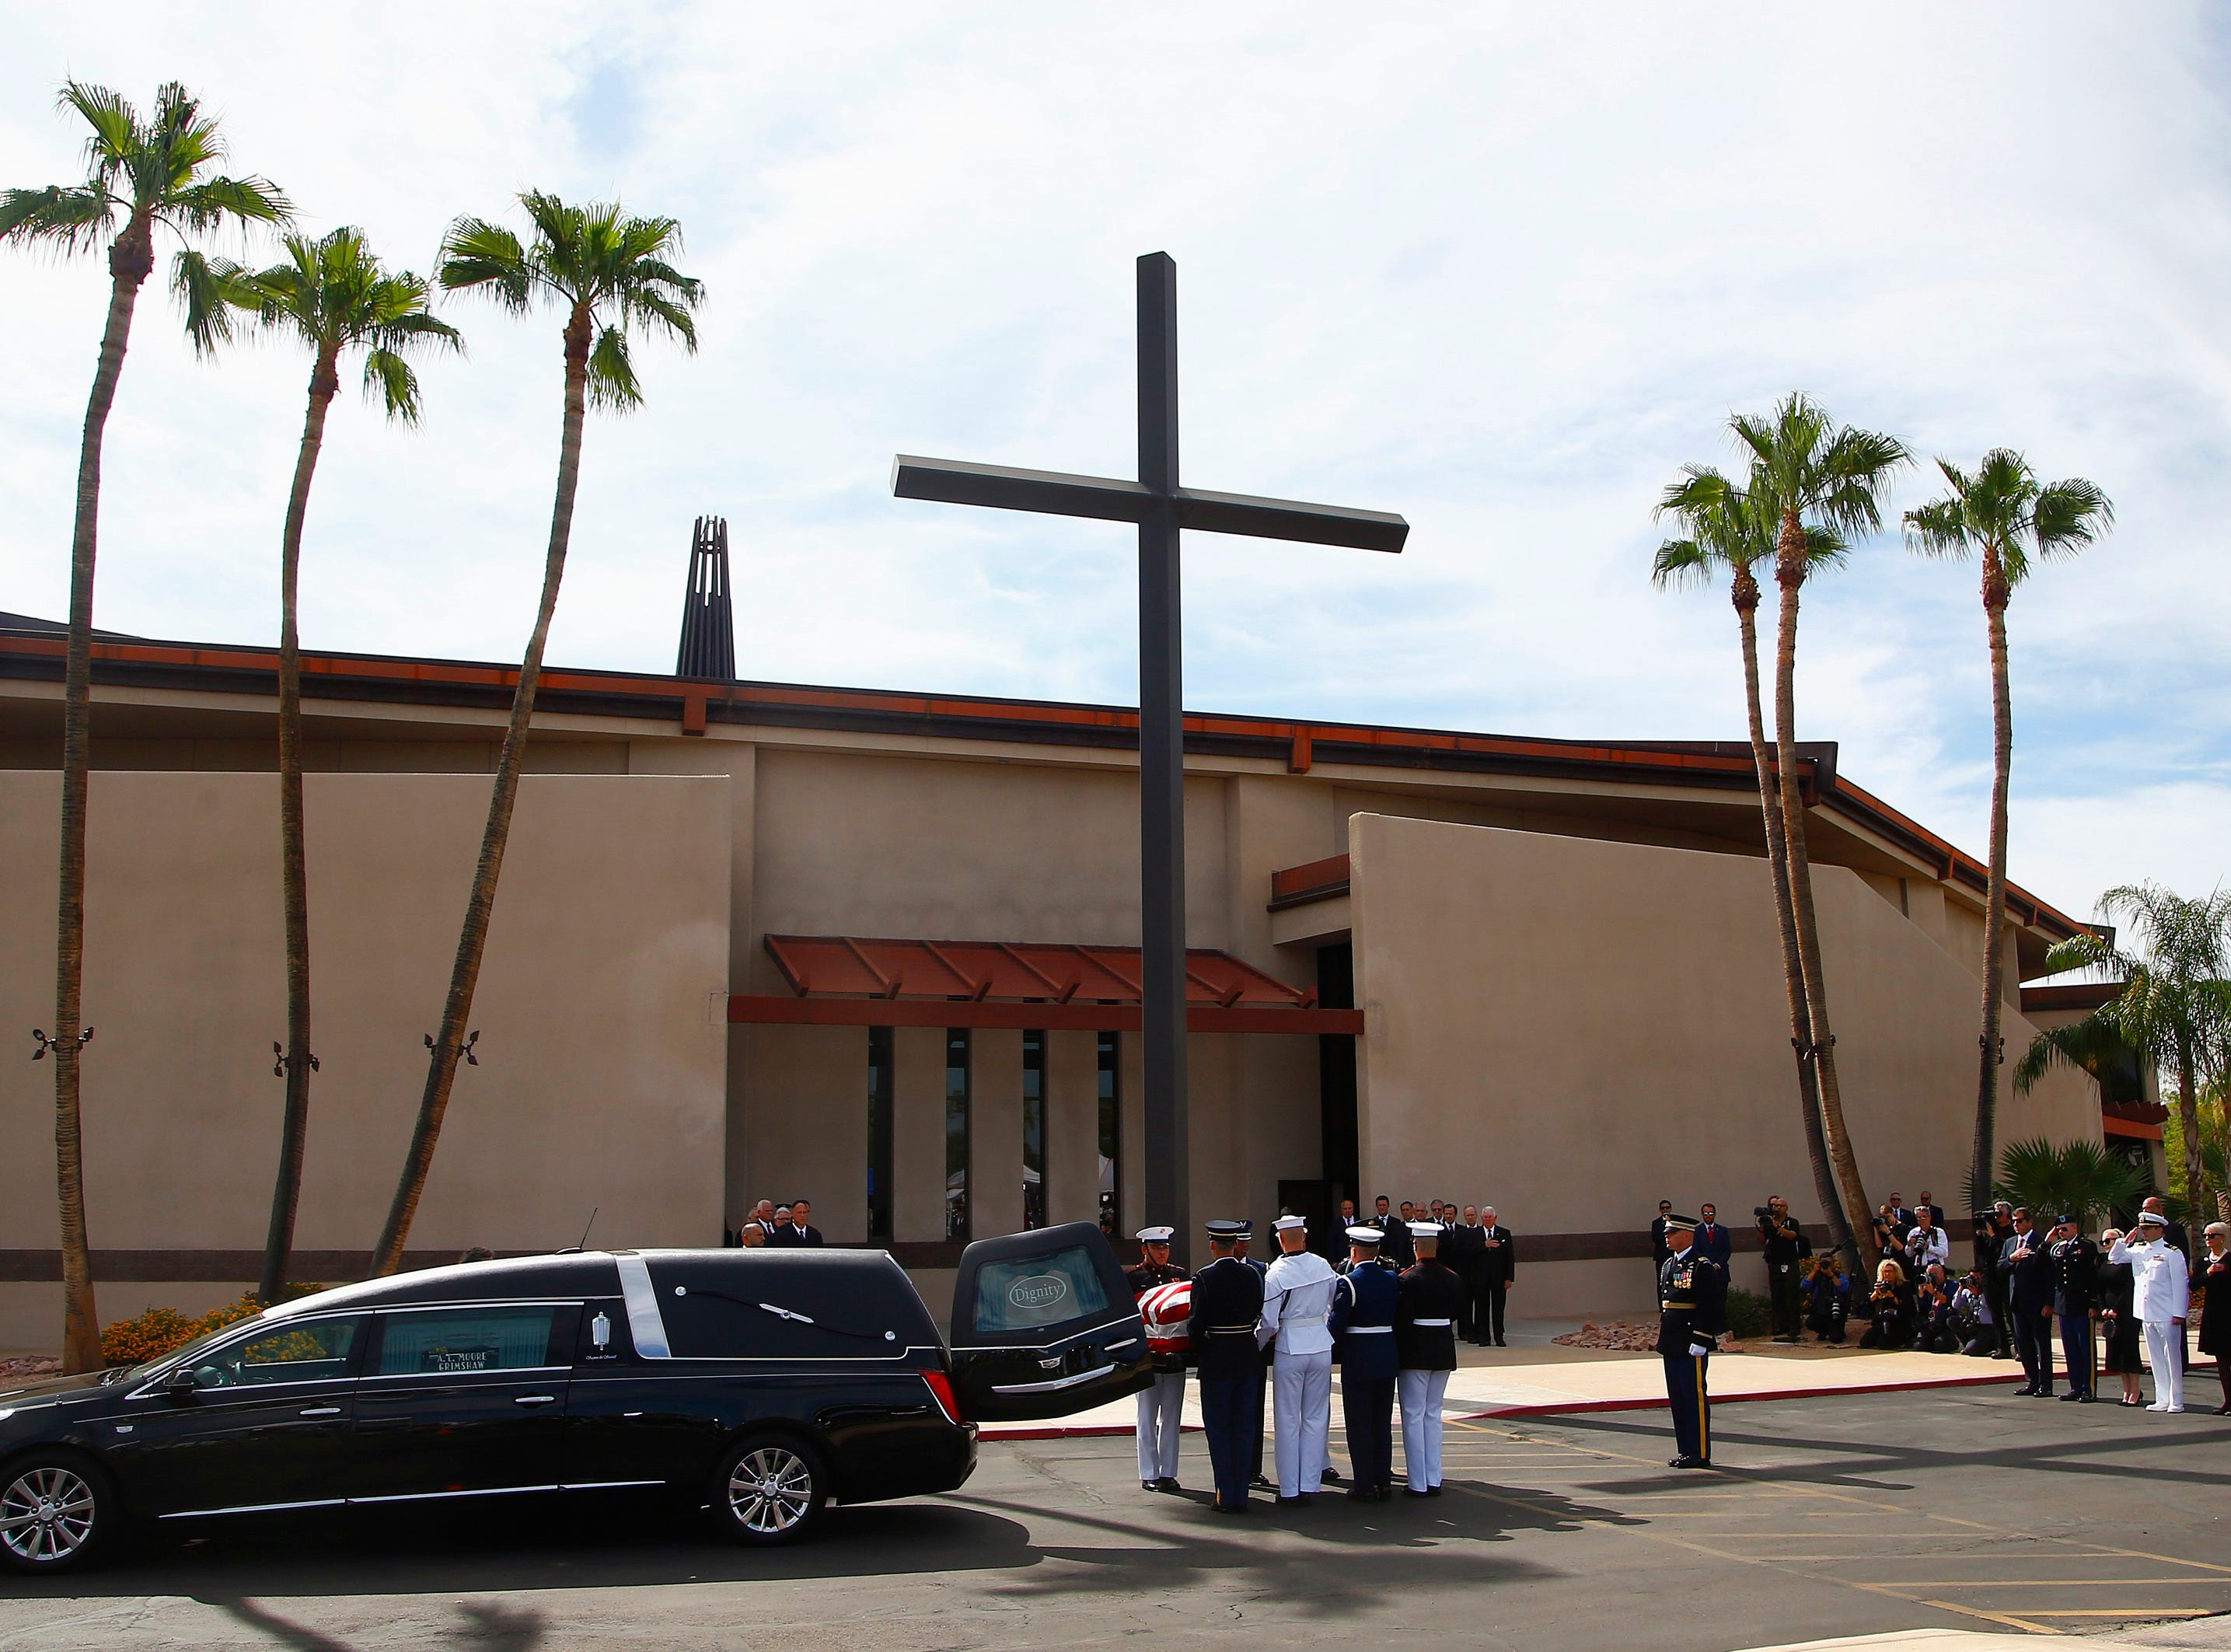 A military team removes the casket carrying Sen. John McCain, R-Ariz., from the hearse prior to a memorial service at North Phoenix Baptist Church as McCain's immediate family watches, right, Aug. 30, 2018, in Phoenix.